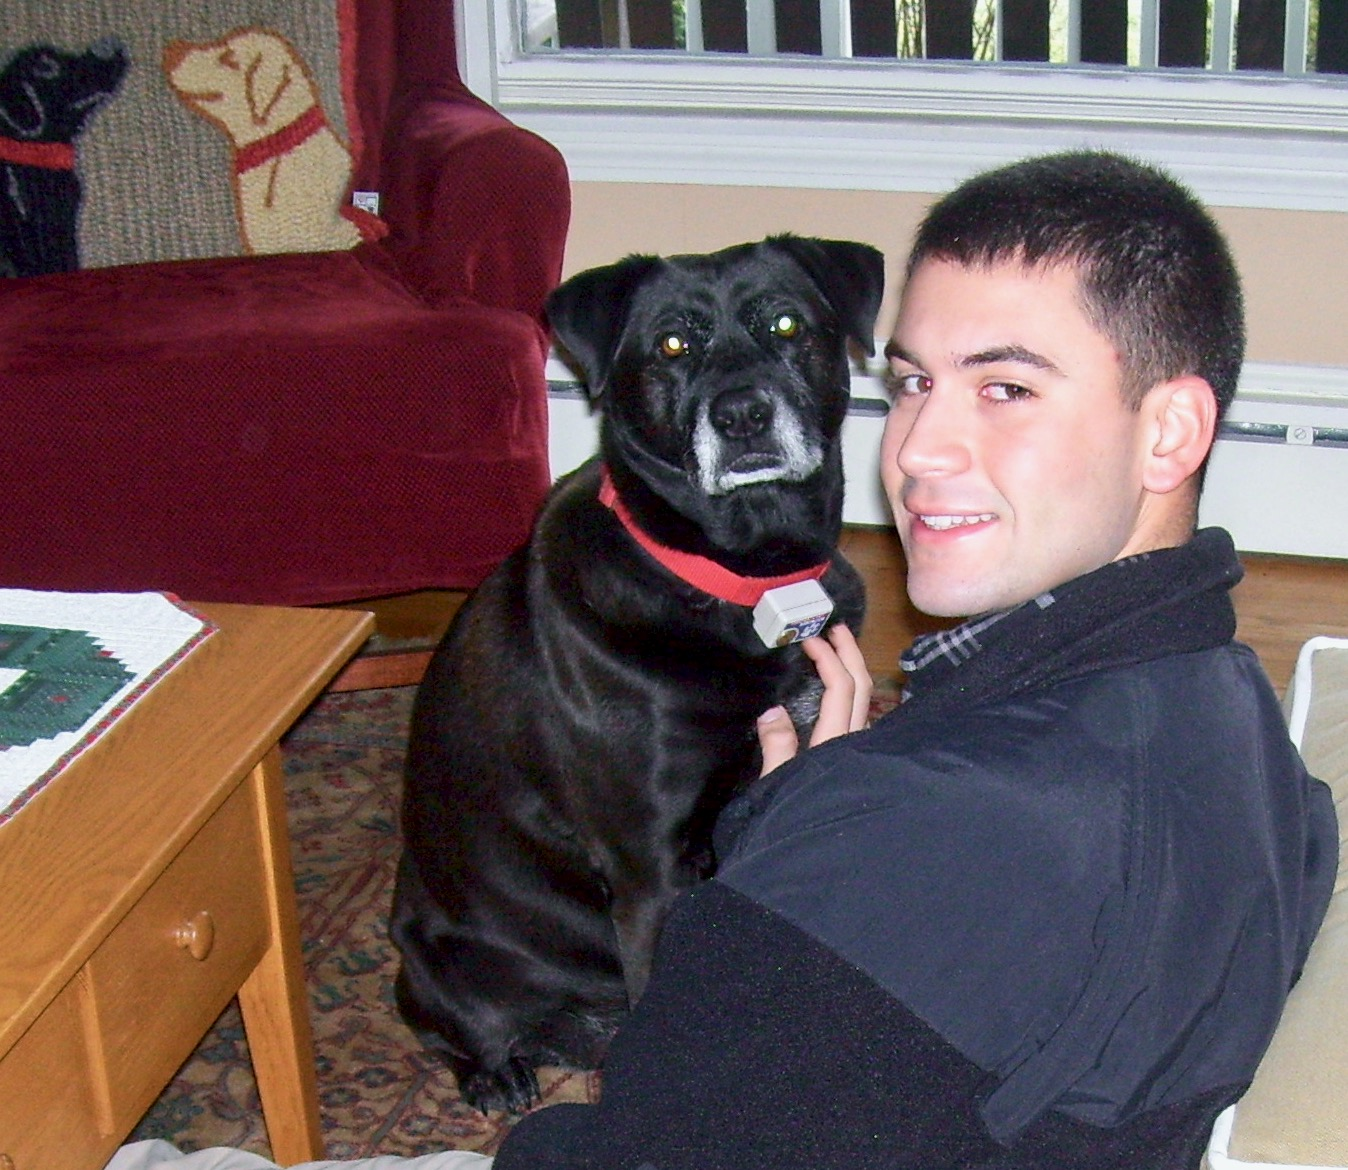 loved being home my son and dog